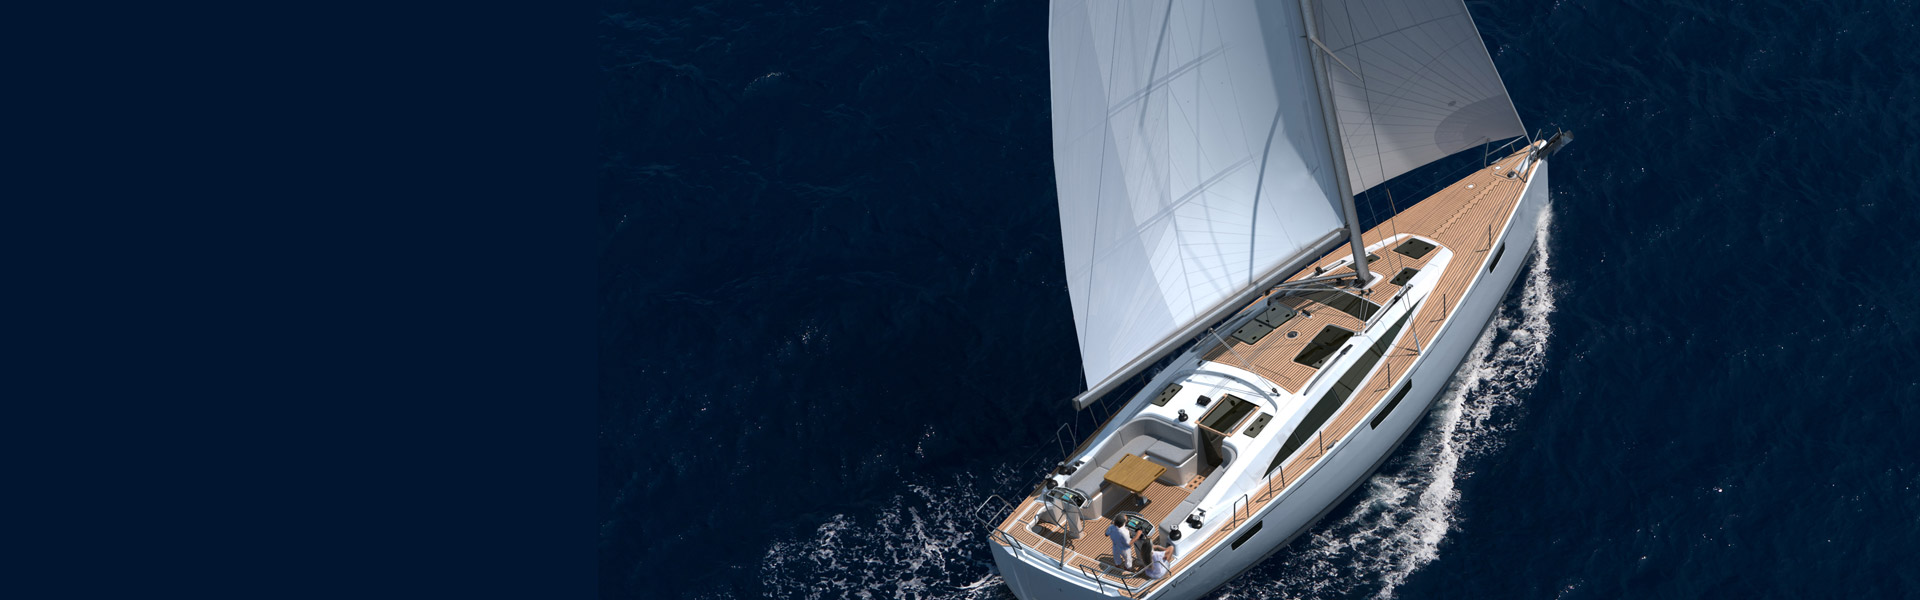 UNBEATABLE YACHT CHARTERING OFFERS